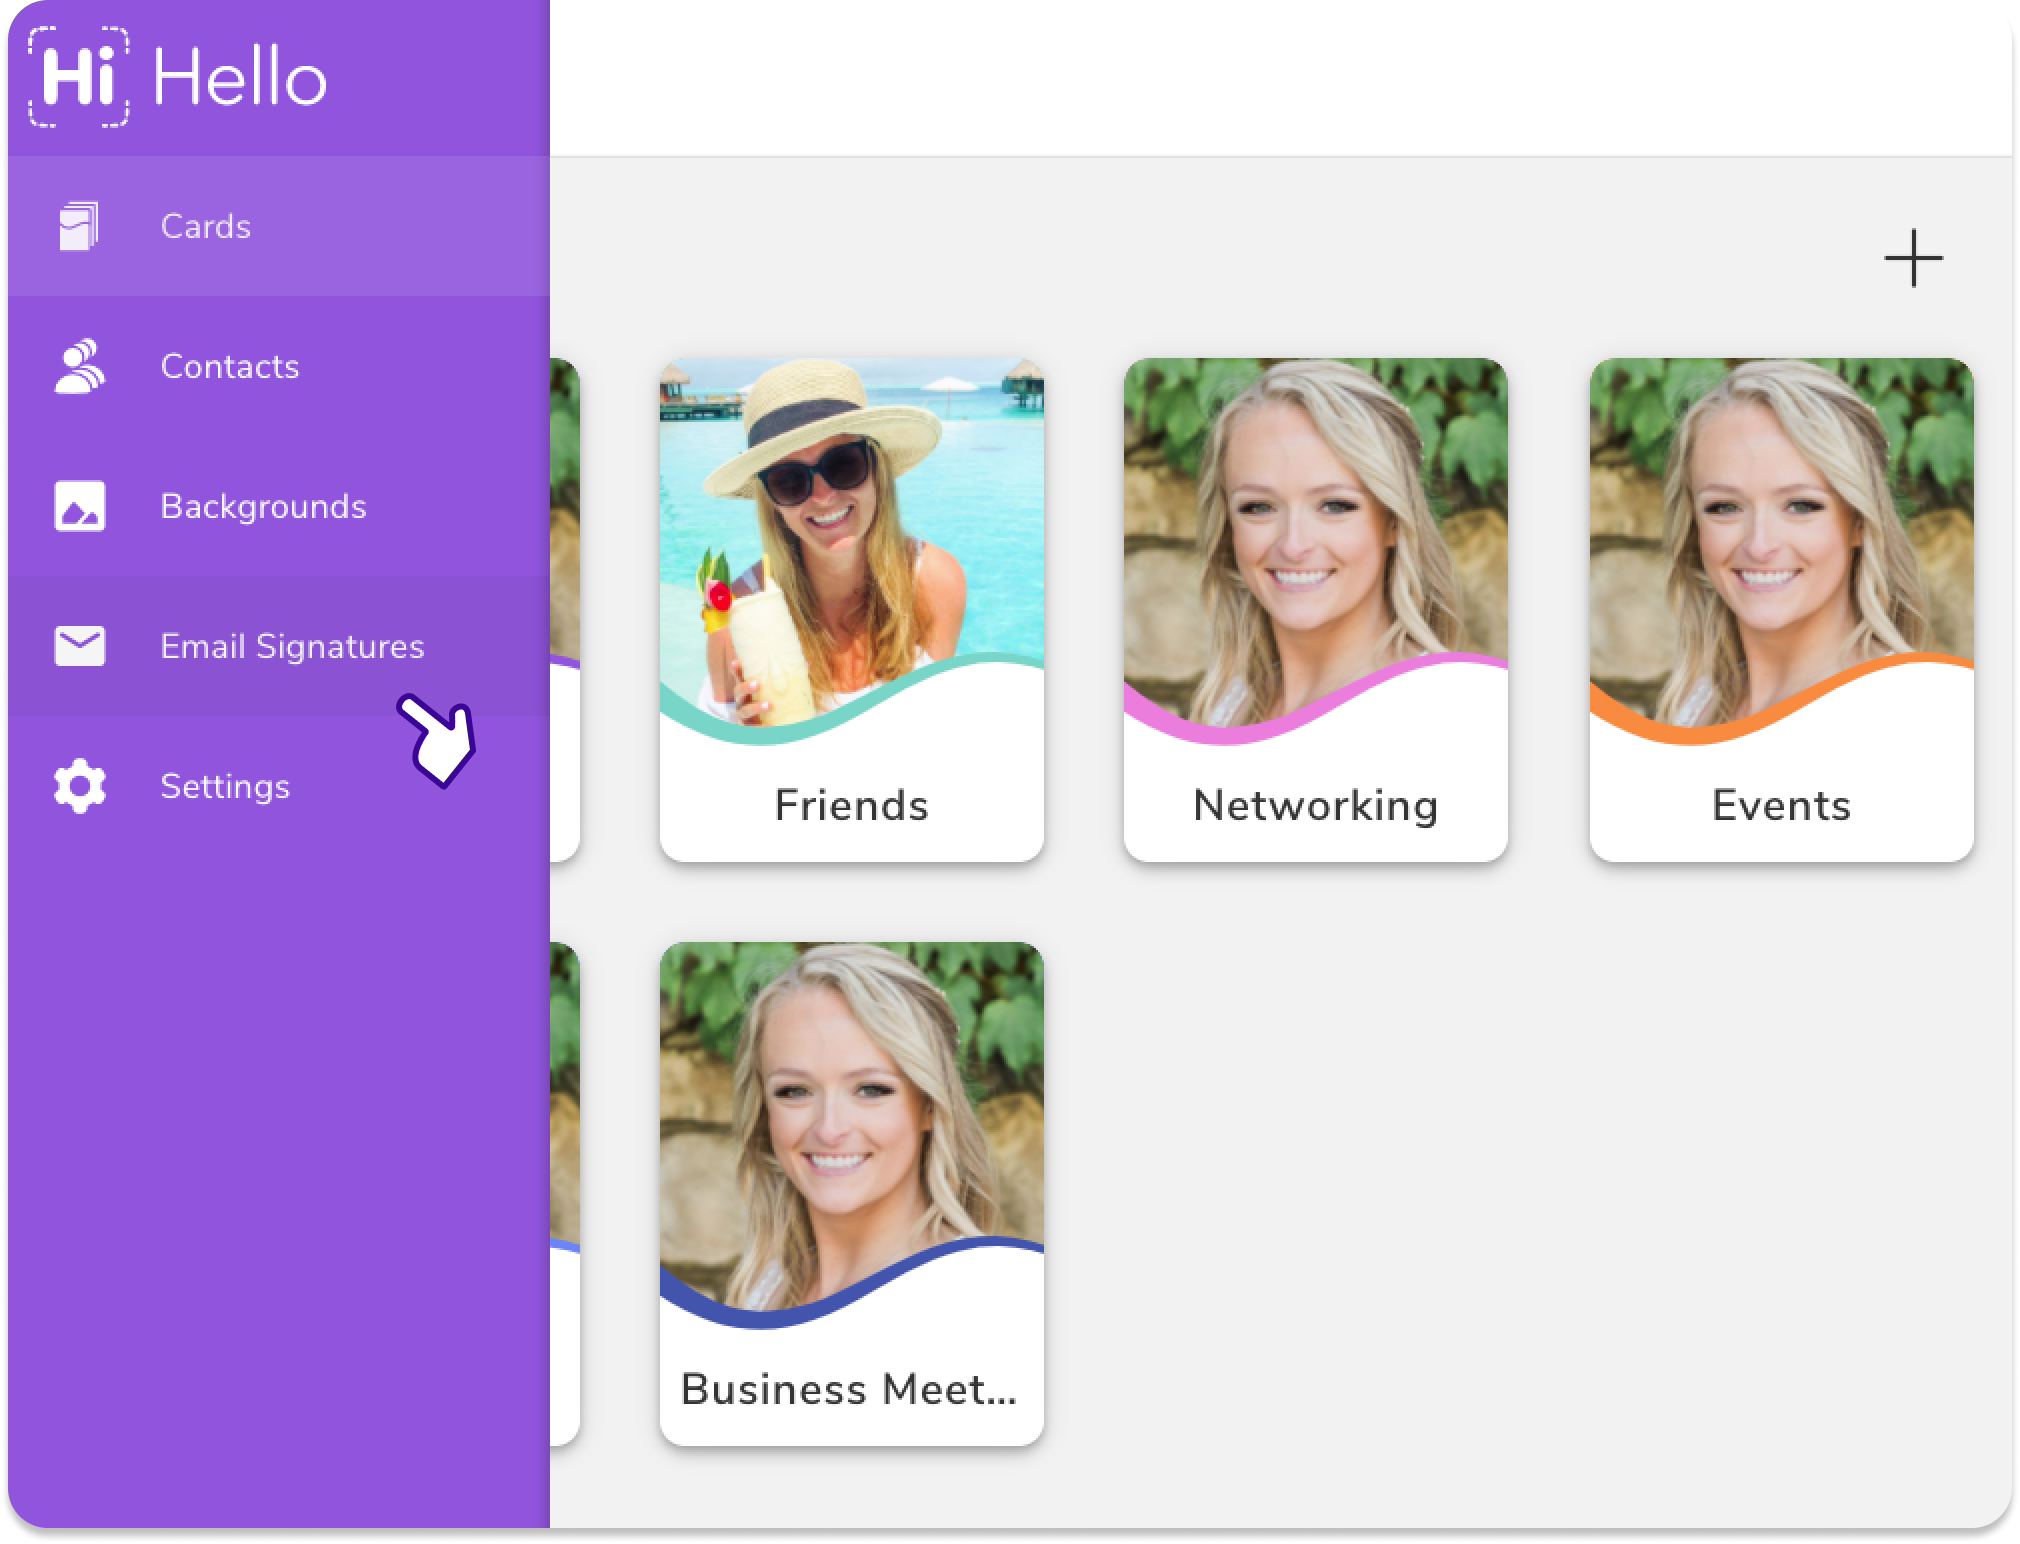 To create an email signature, log in to the HiHello web app and click Email Signatures